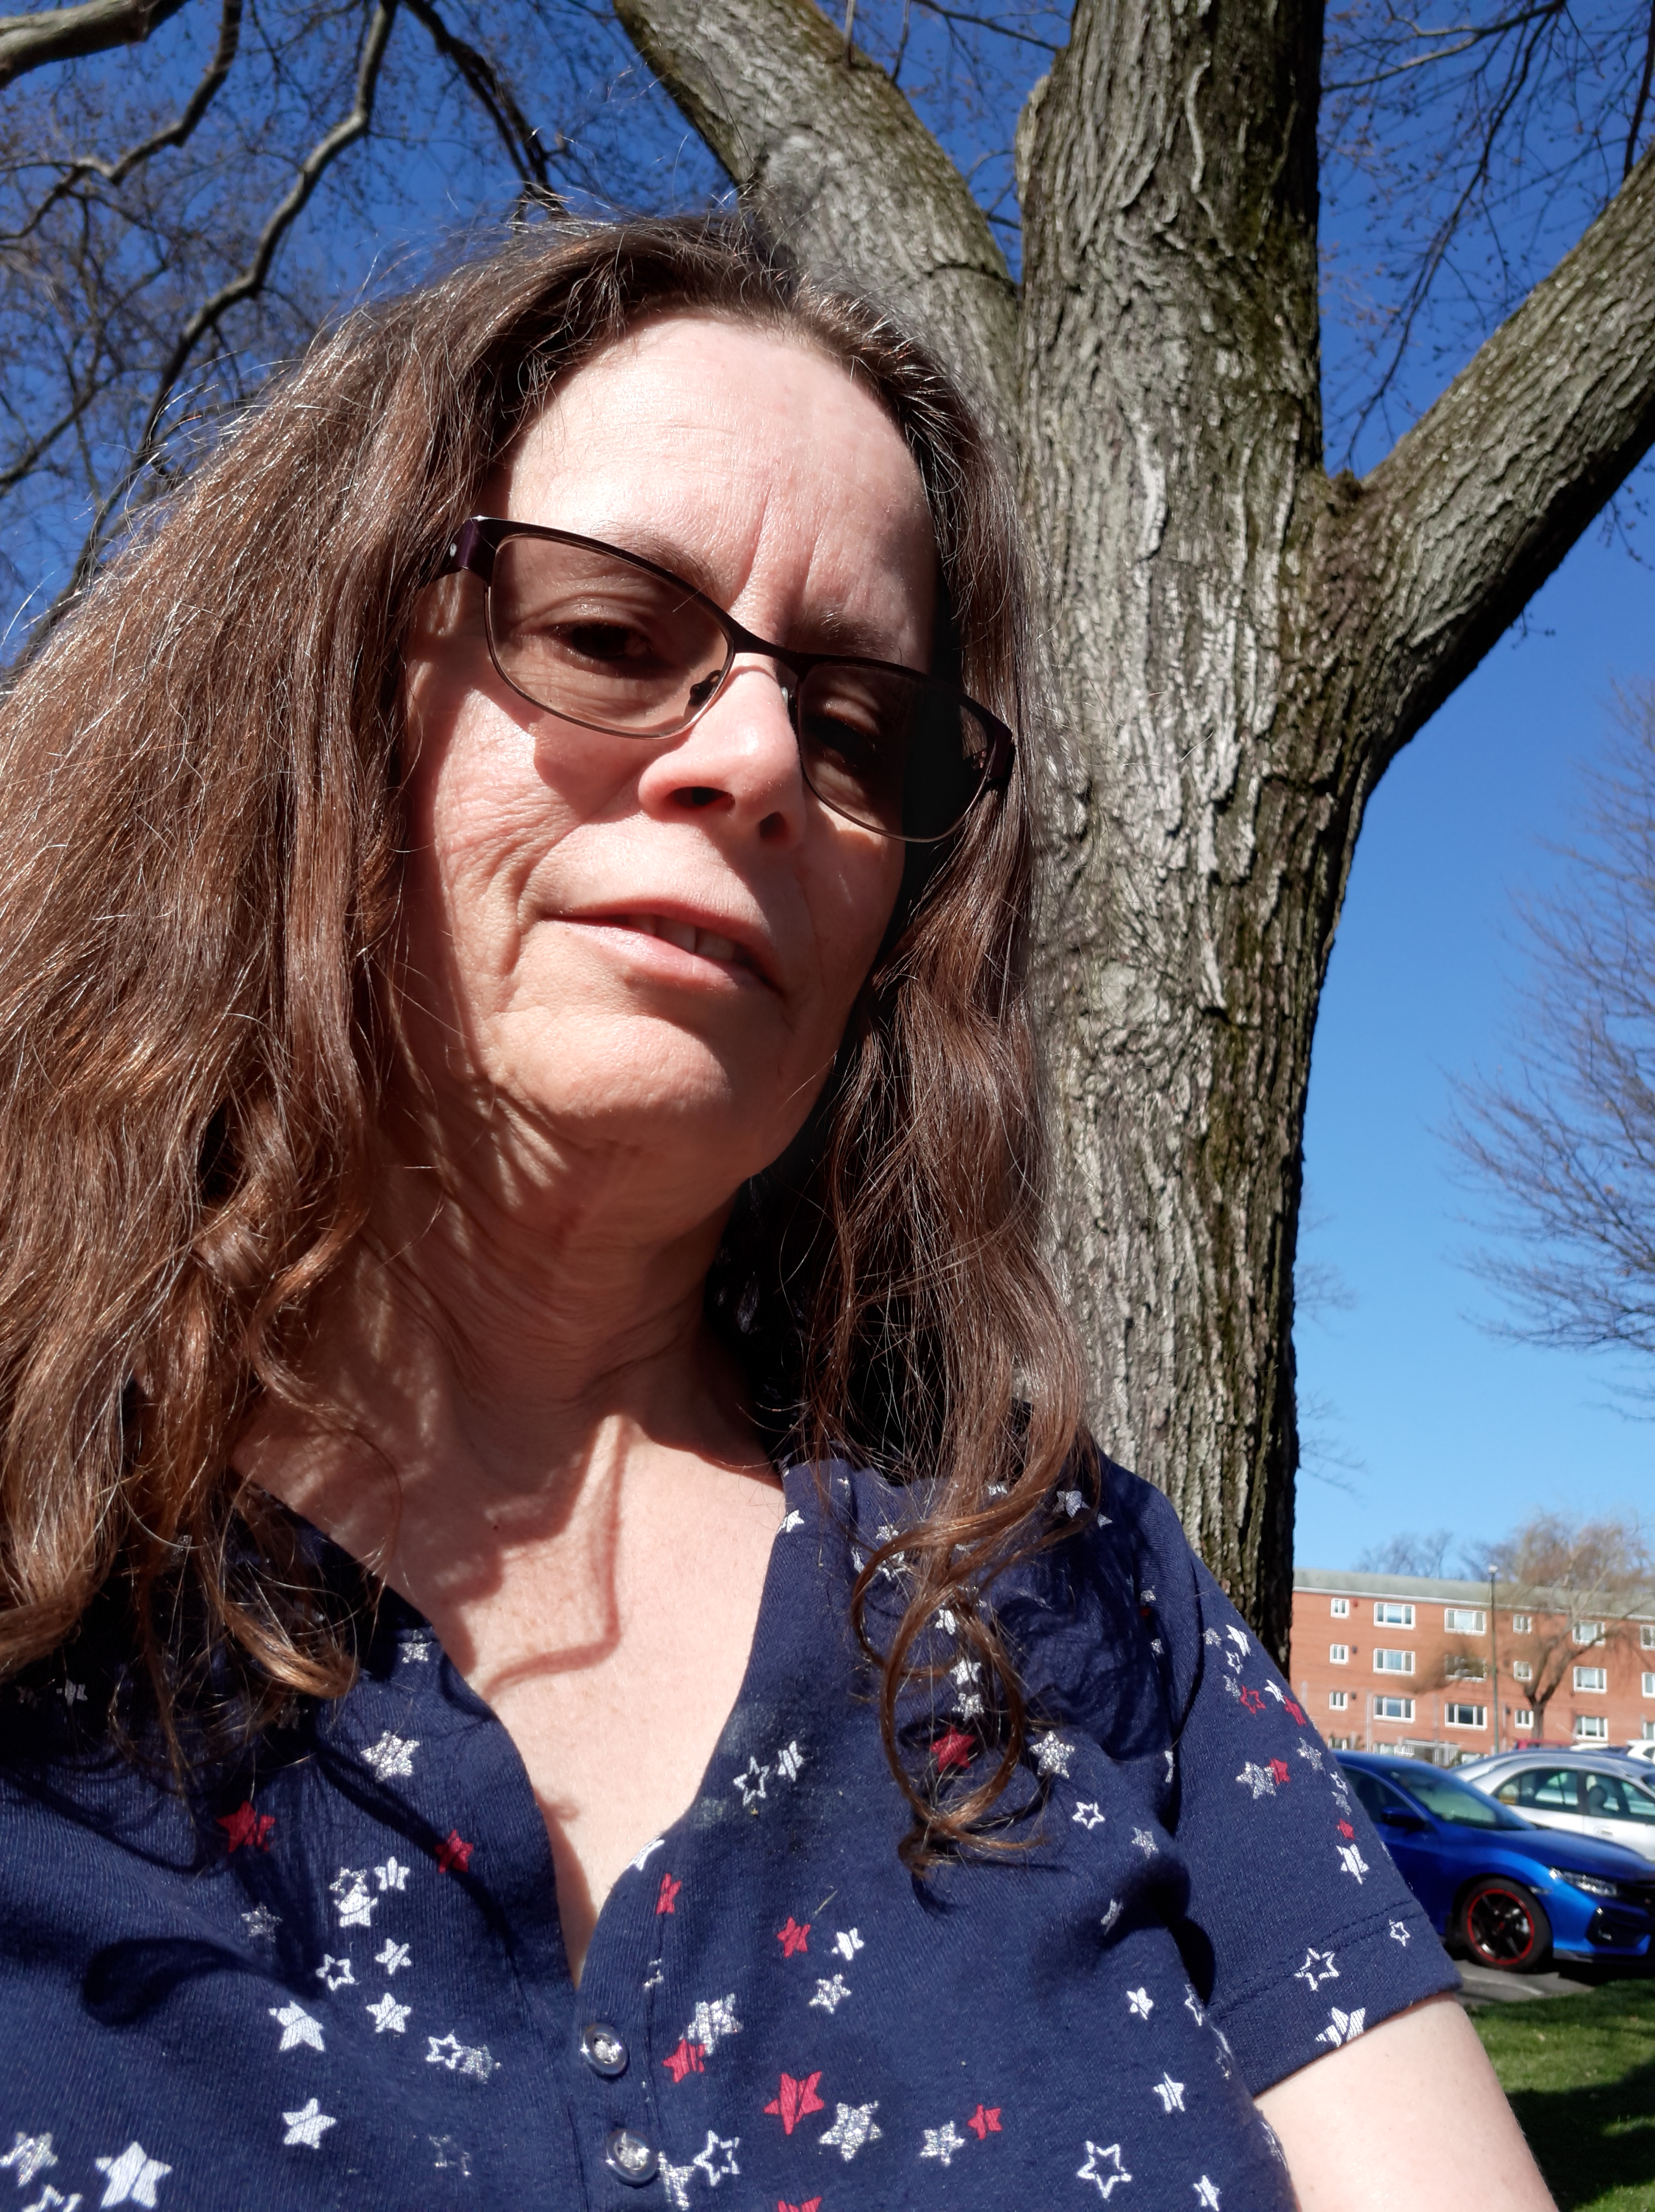 Writer Linda Maye Adams out by a tree on a spring day